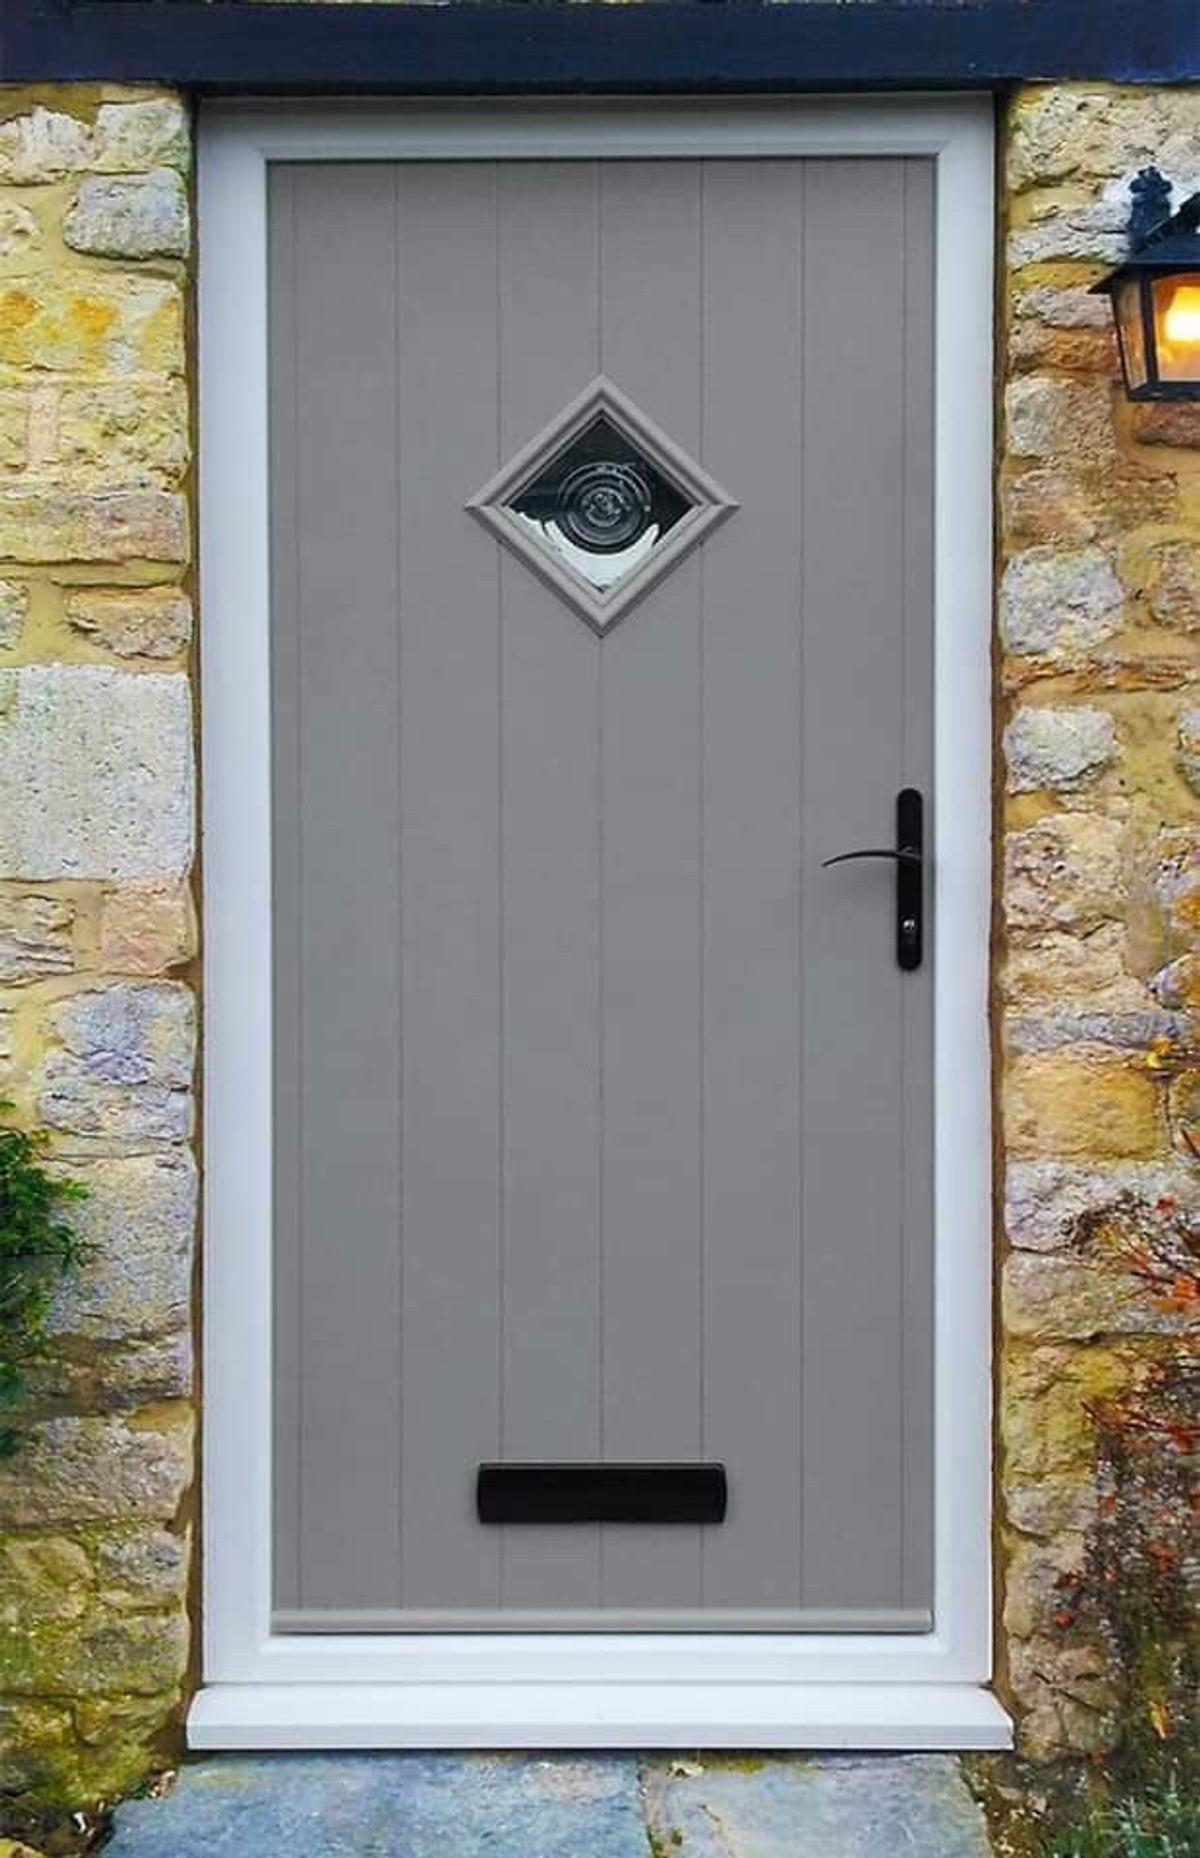 AMAZING SPRING OFFER‼️  Get up to £350 off for recycling your old door in our amazing Spring offer ♻️ 🍃🌿🌱  Dozens of styles, 🚪 colours and glass designs Classic handles to Slam lock system Optional security camera available 📸 All doors made to measure  Pick your door style🚪 We will give you a free no obligation no hassle quote that is rubber stamped for 12 months‼️ Check out the savings and be amazed 😮  Feel free to inbox me Regards